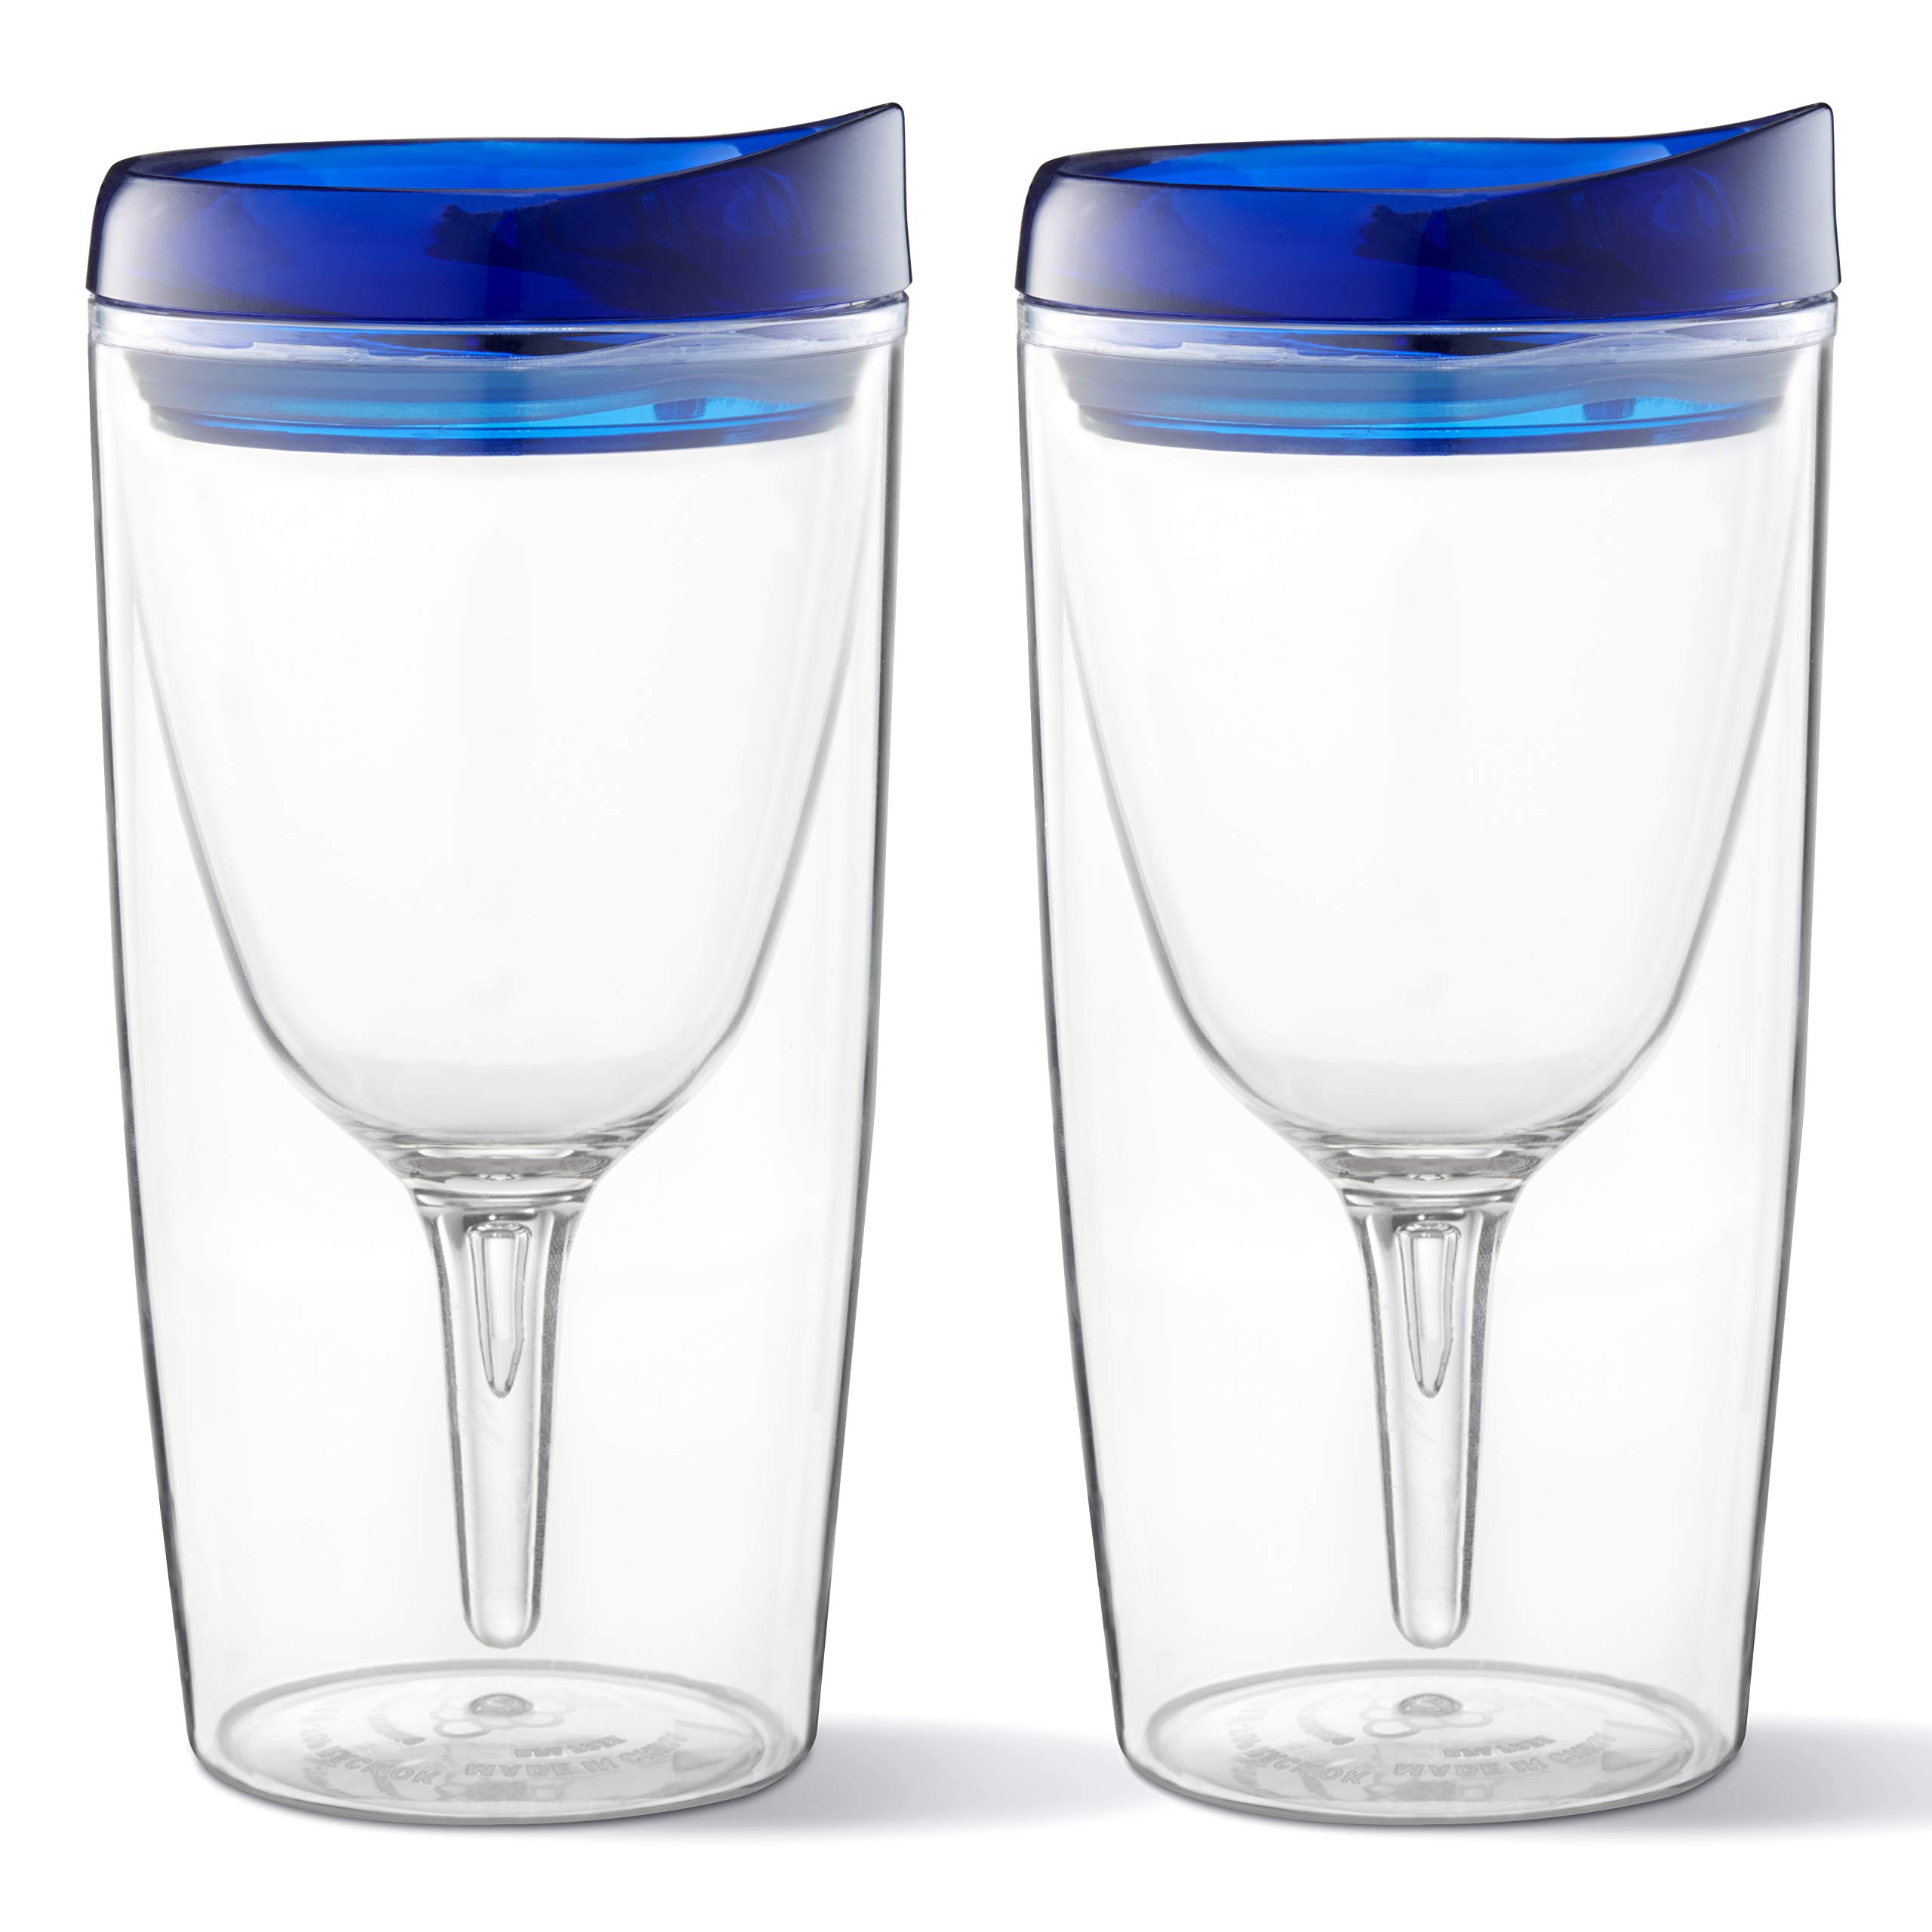 Vino2go 10 Oz Wine Glass Tumbler 2 Pack Unbreakable Tritan Material Double Wall Insulated With Blue Lids